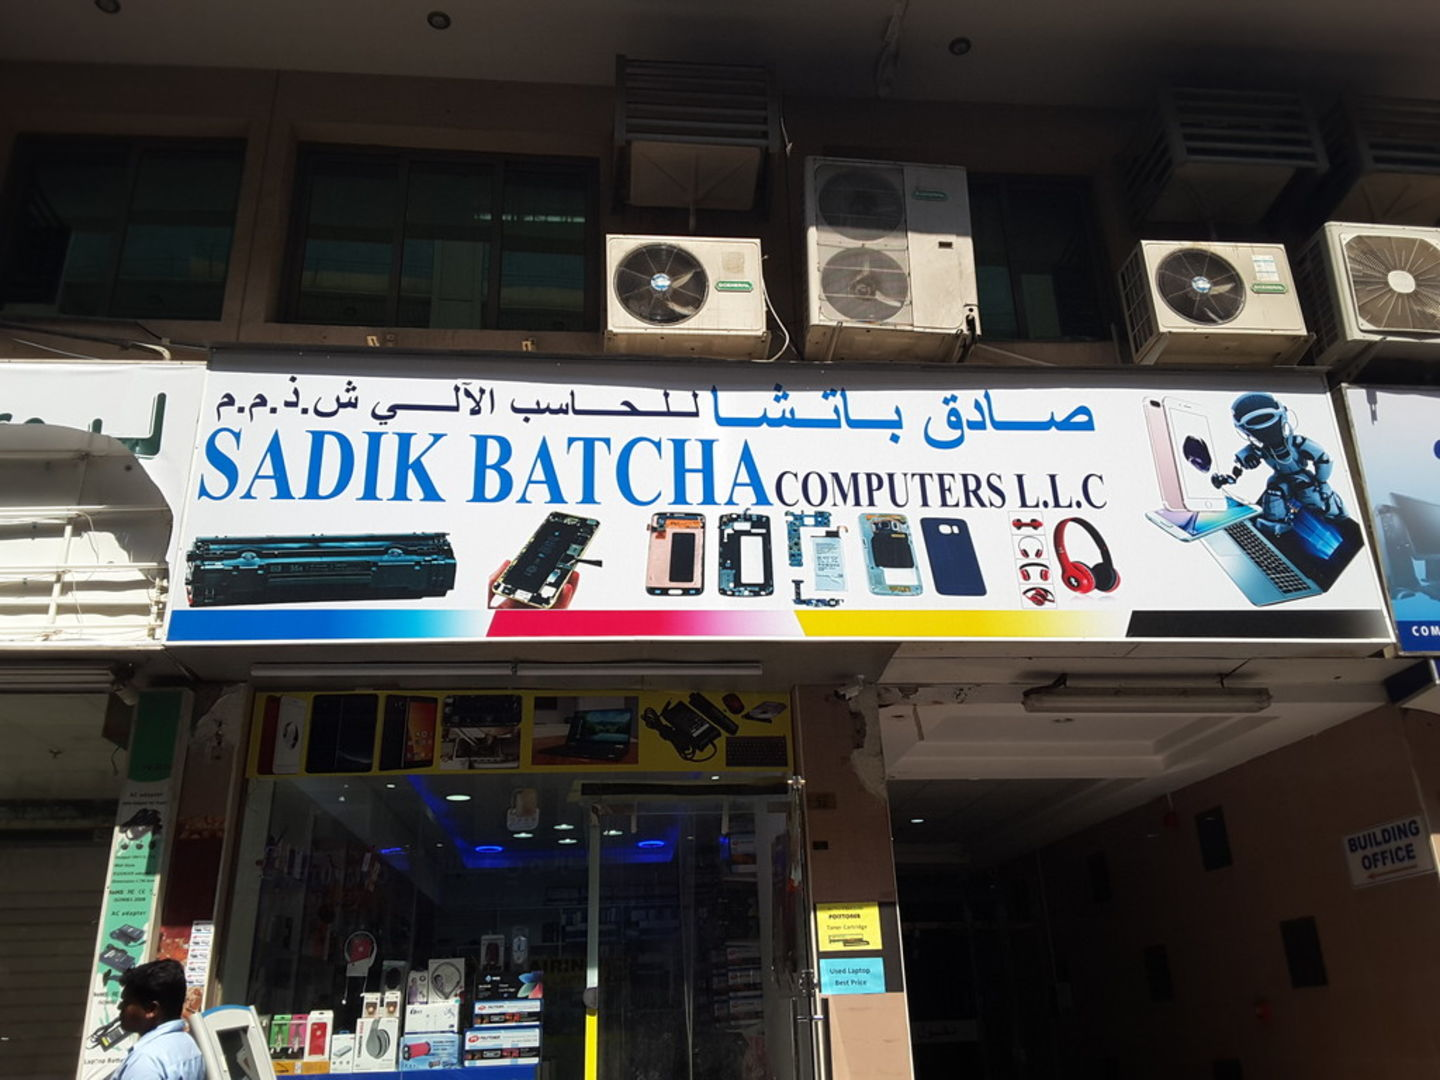 HiDubai-business-sadik-batcha-computers-shopping-consumer-electronics-al-fahidi-al-souq-al-kabeer-dubai-2